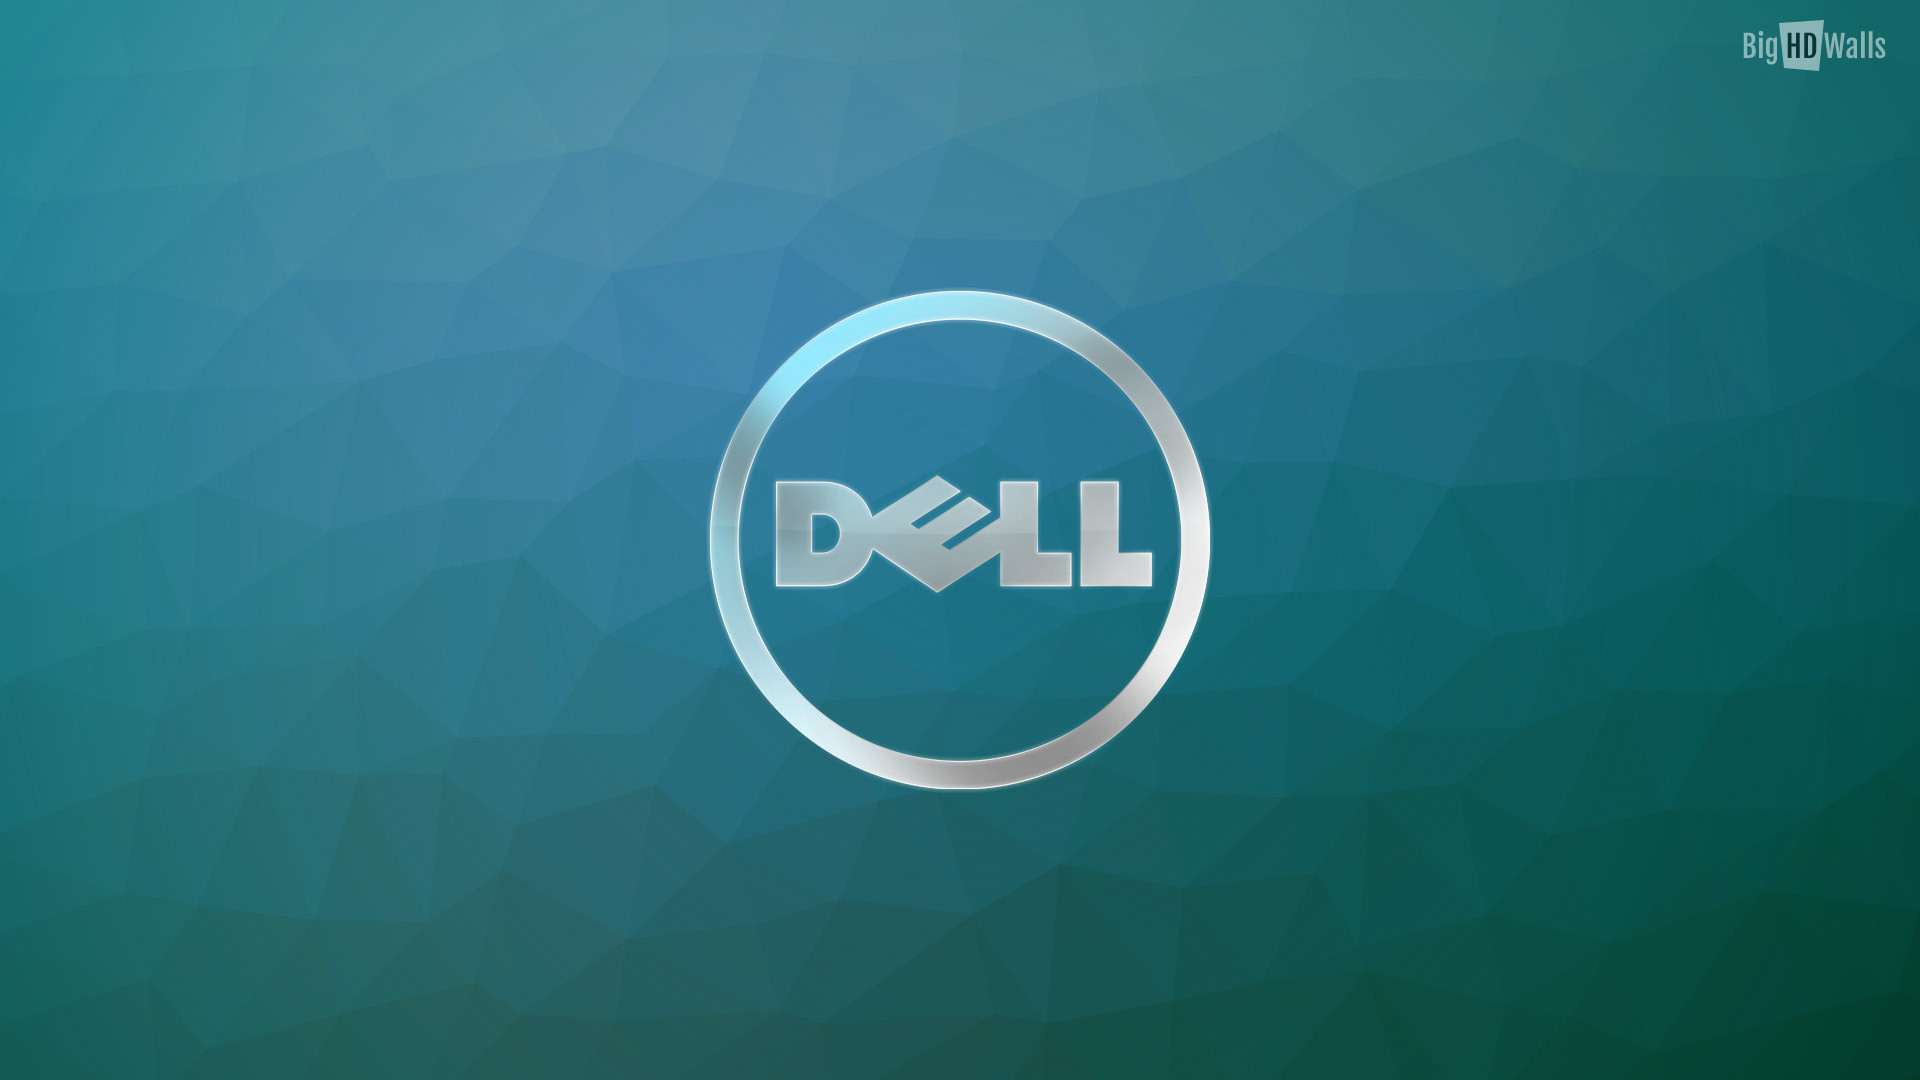 1920x1080 dell xps wallpaper  3D Wallpapers for Dell logo